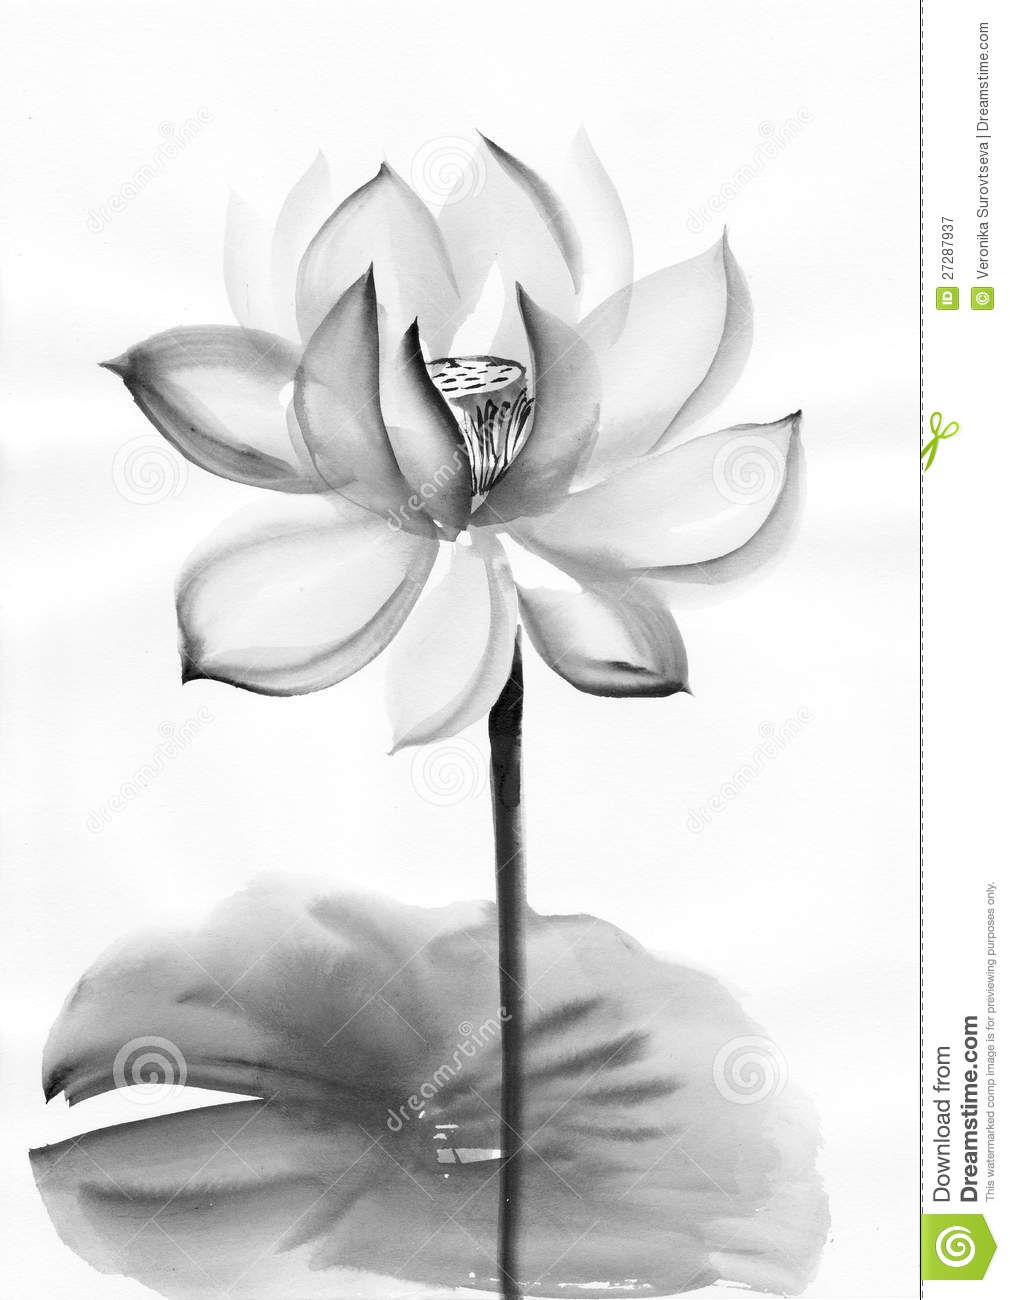 Watercolor Painting Of Lotus Flowers Stock Illustration